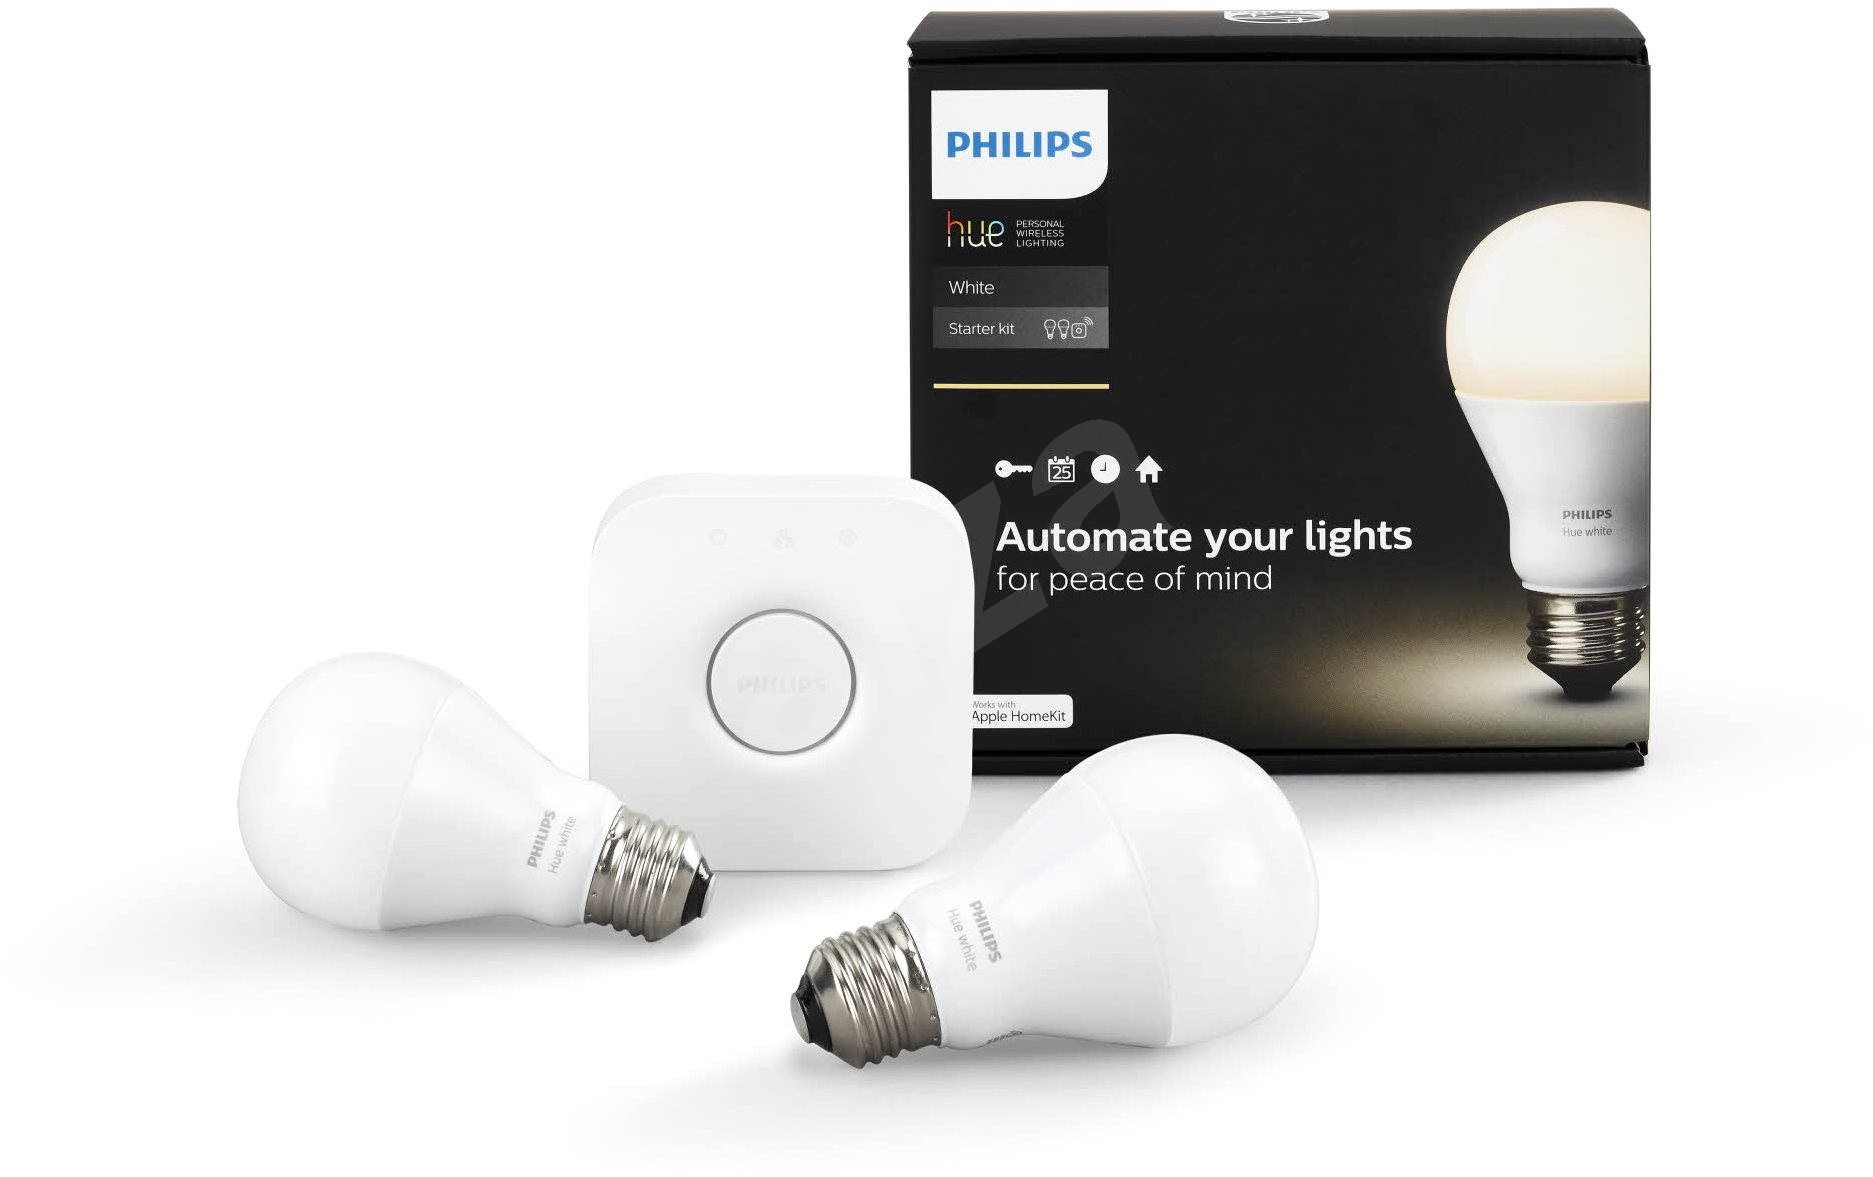 philips hue white 8 5w e27 starter kit led bulb. Black Bedroom Furniture Sets. Home Design Ideas